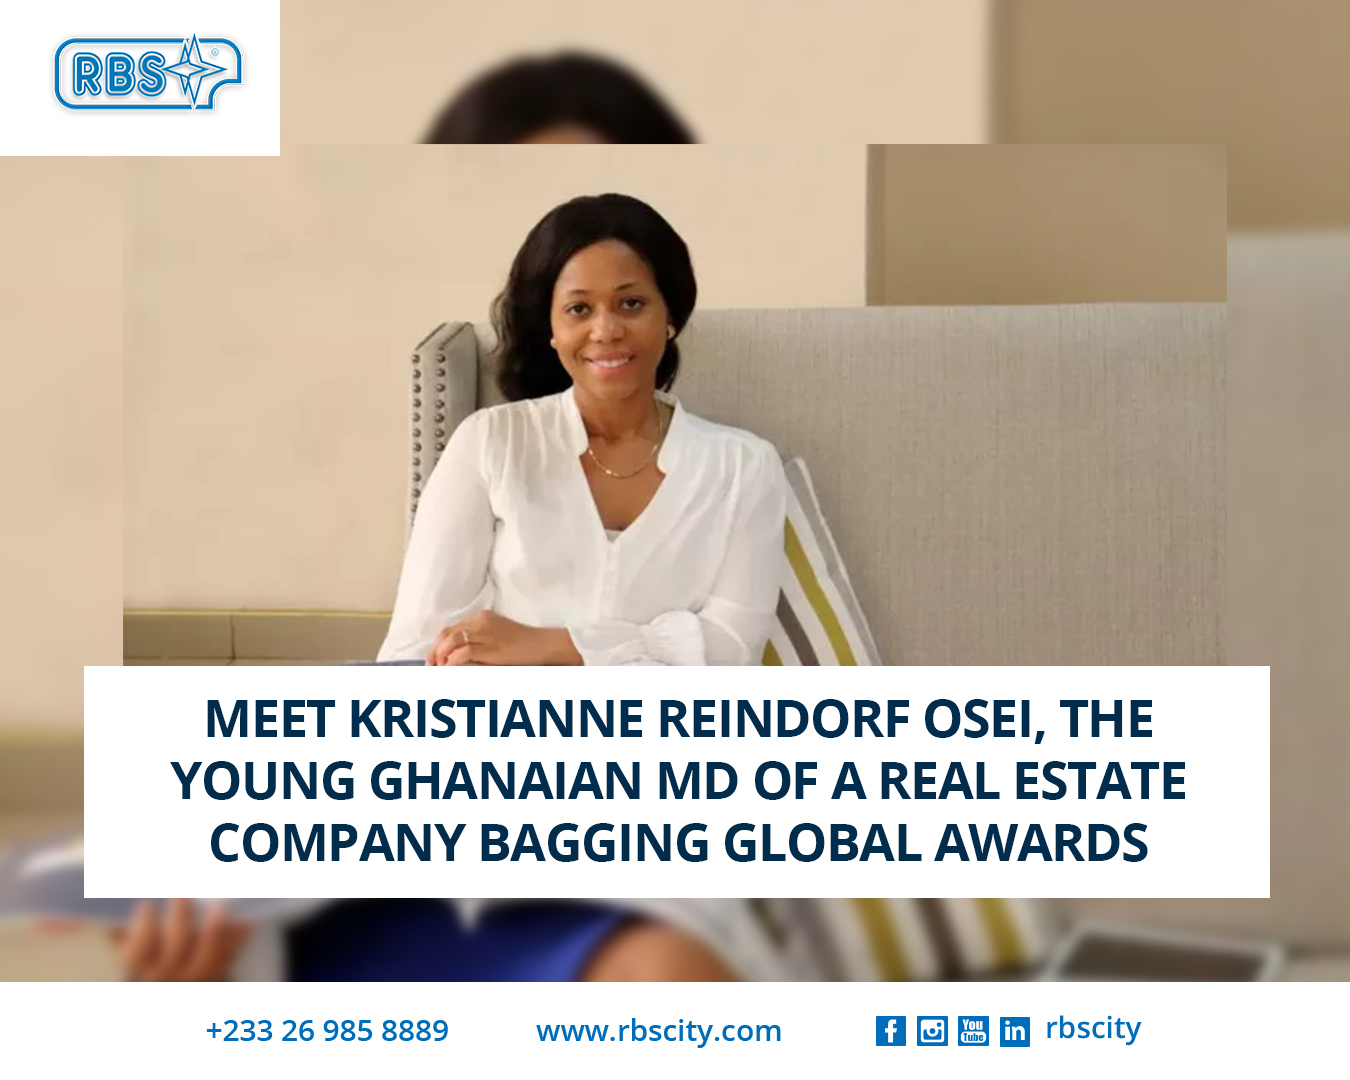 Meet Kristianne Reindorf Osei, the young Ghanaian MD of a real estate company bagging global awards